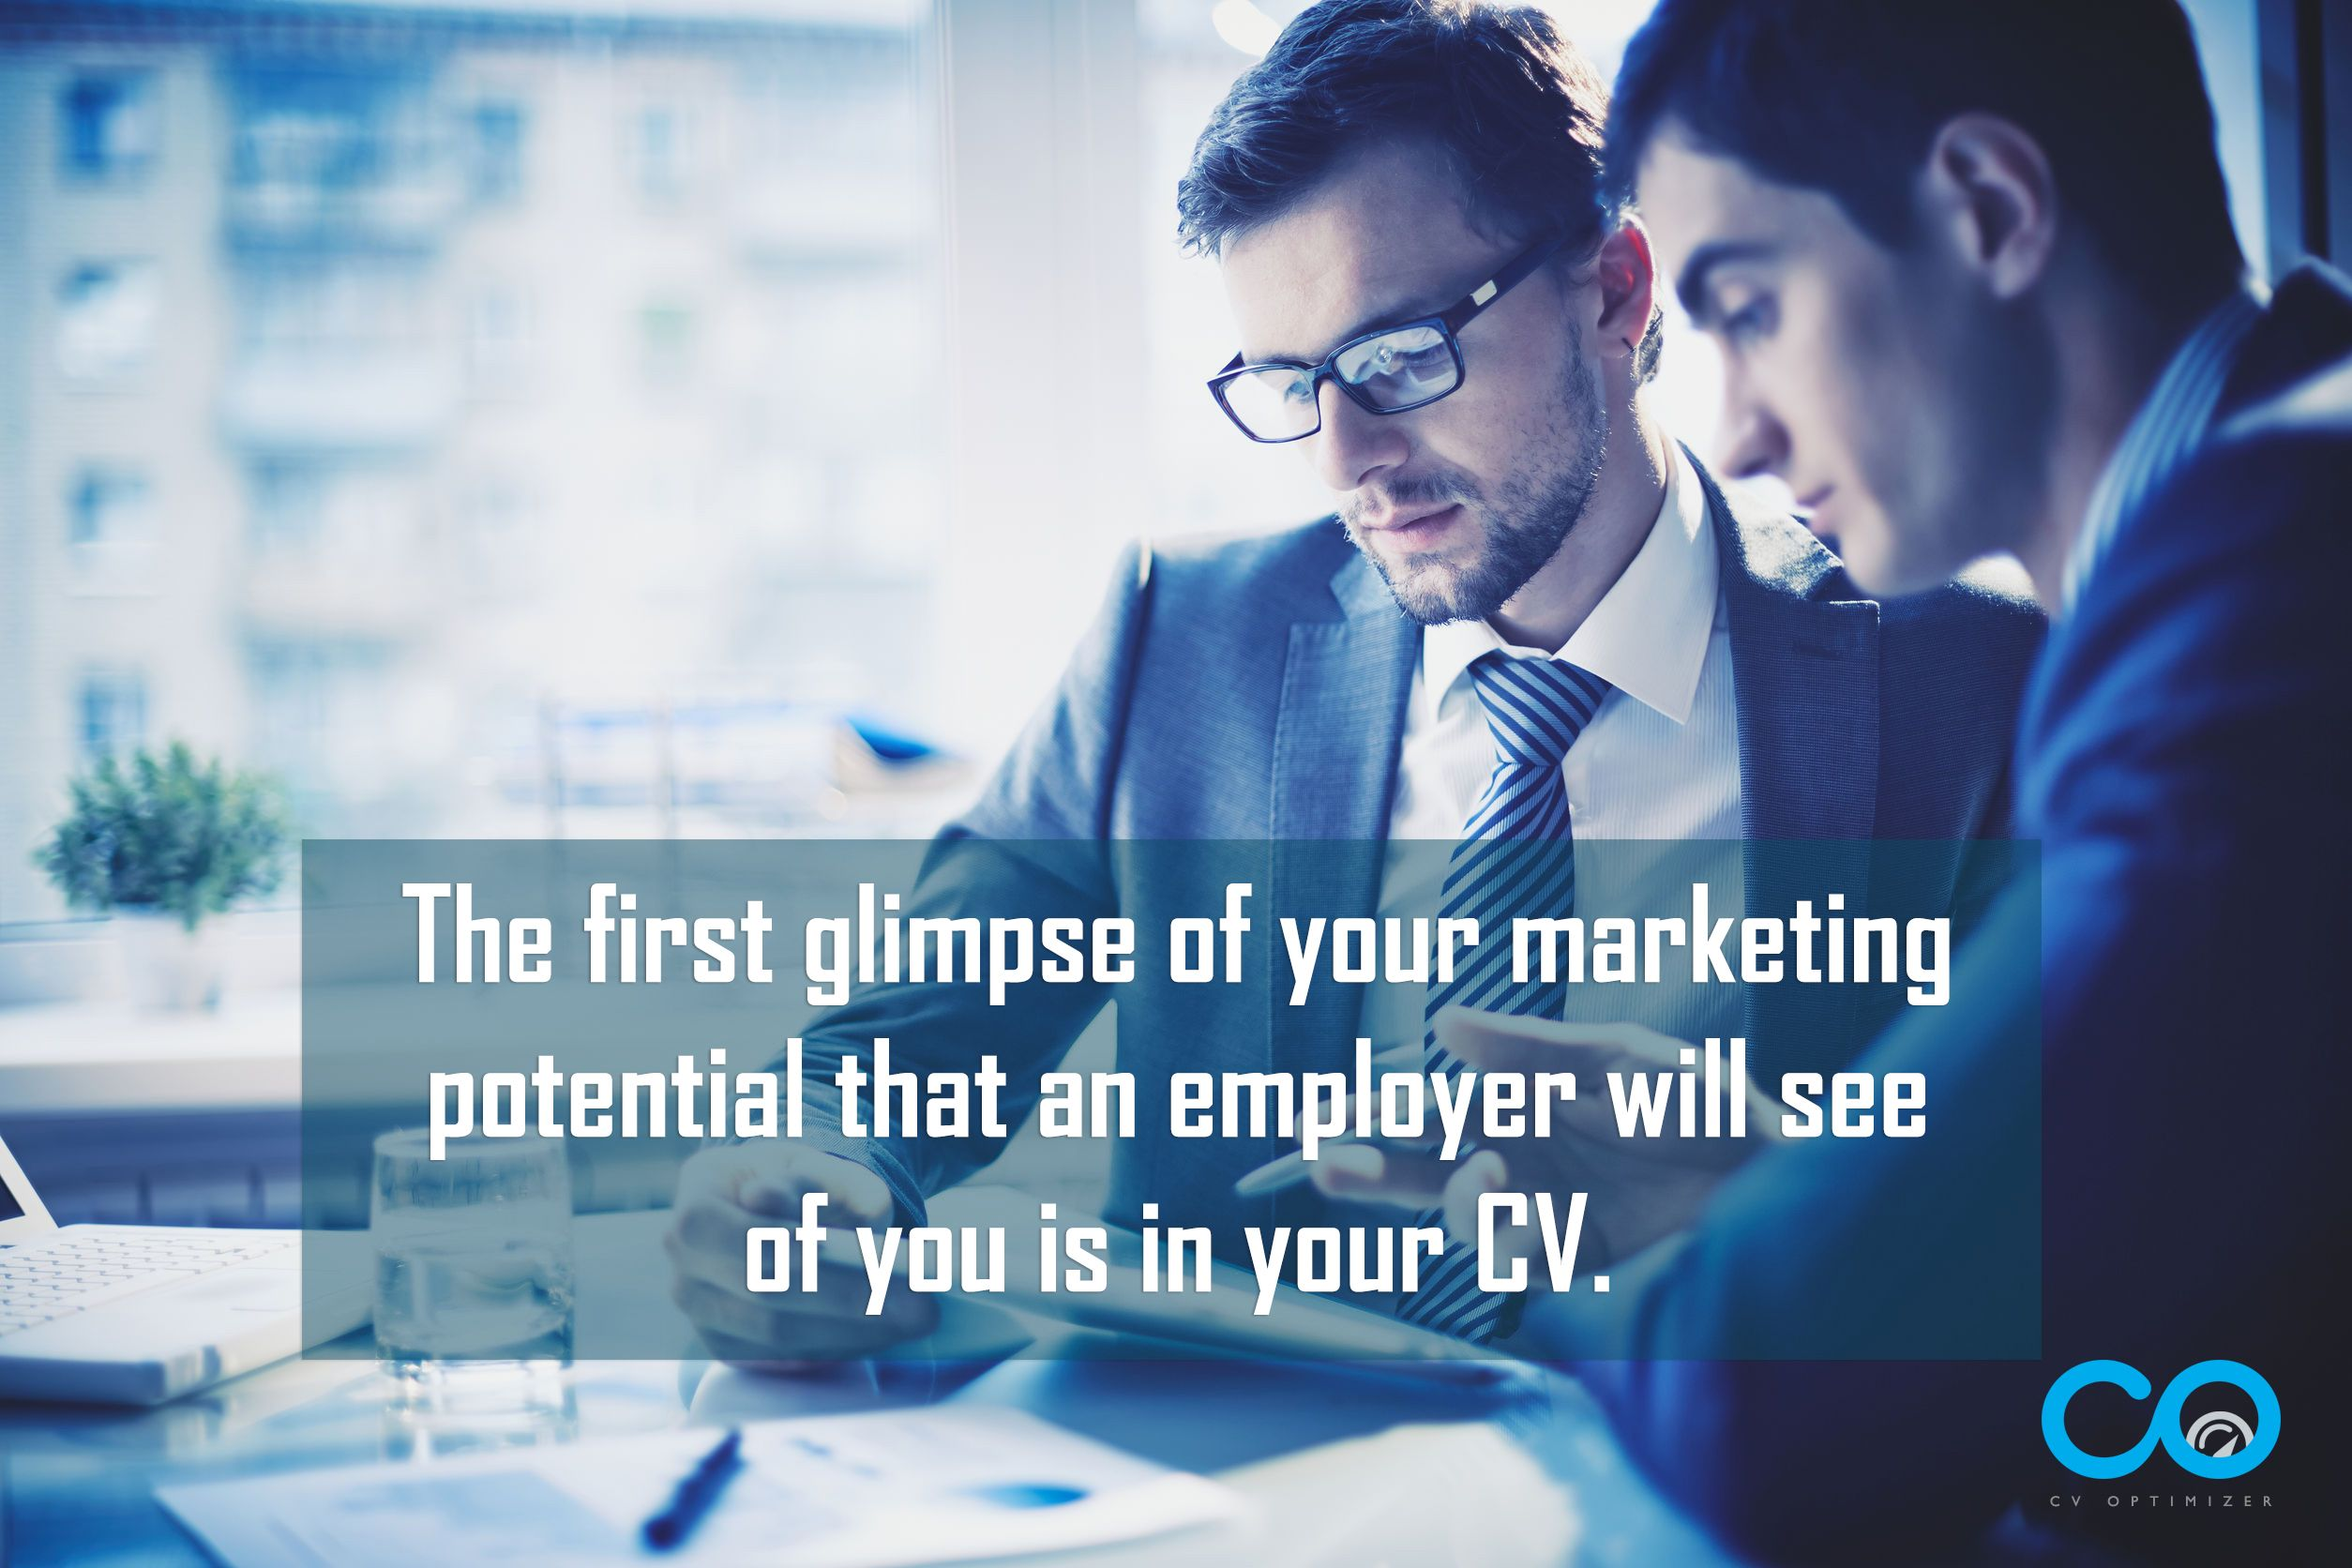 Our professional #CV writing services, we can also advise on the ...